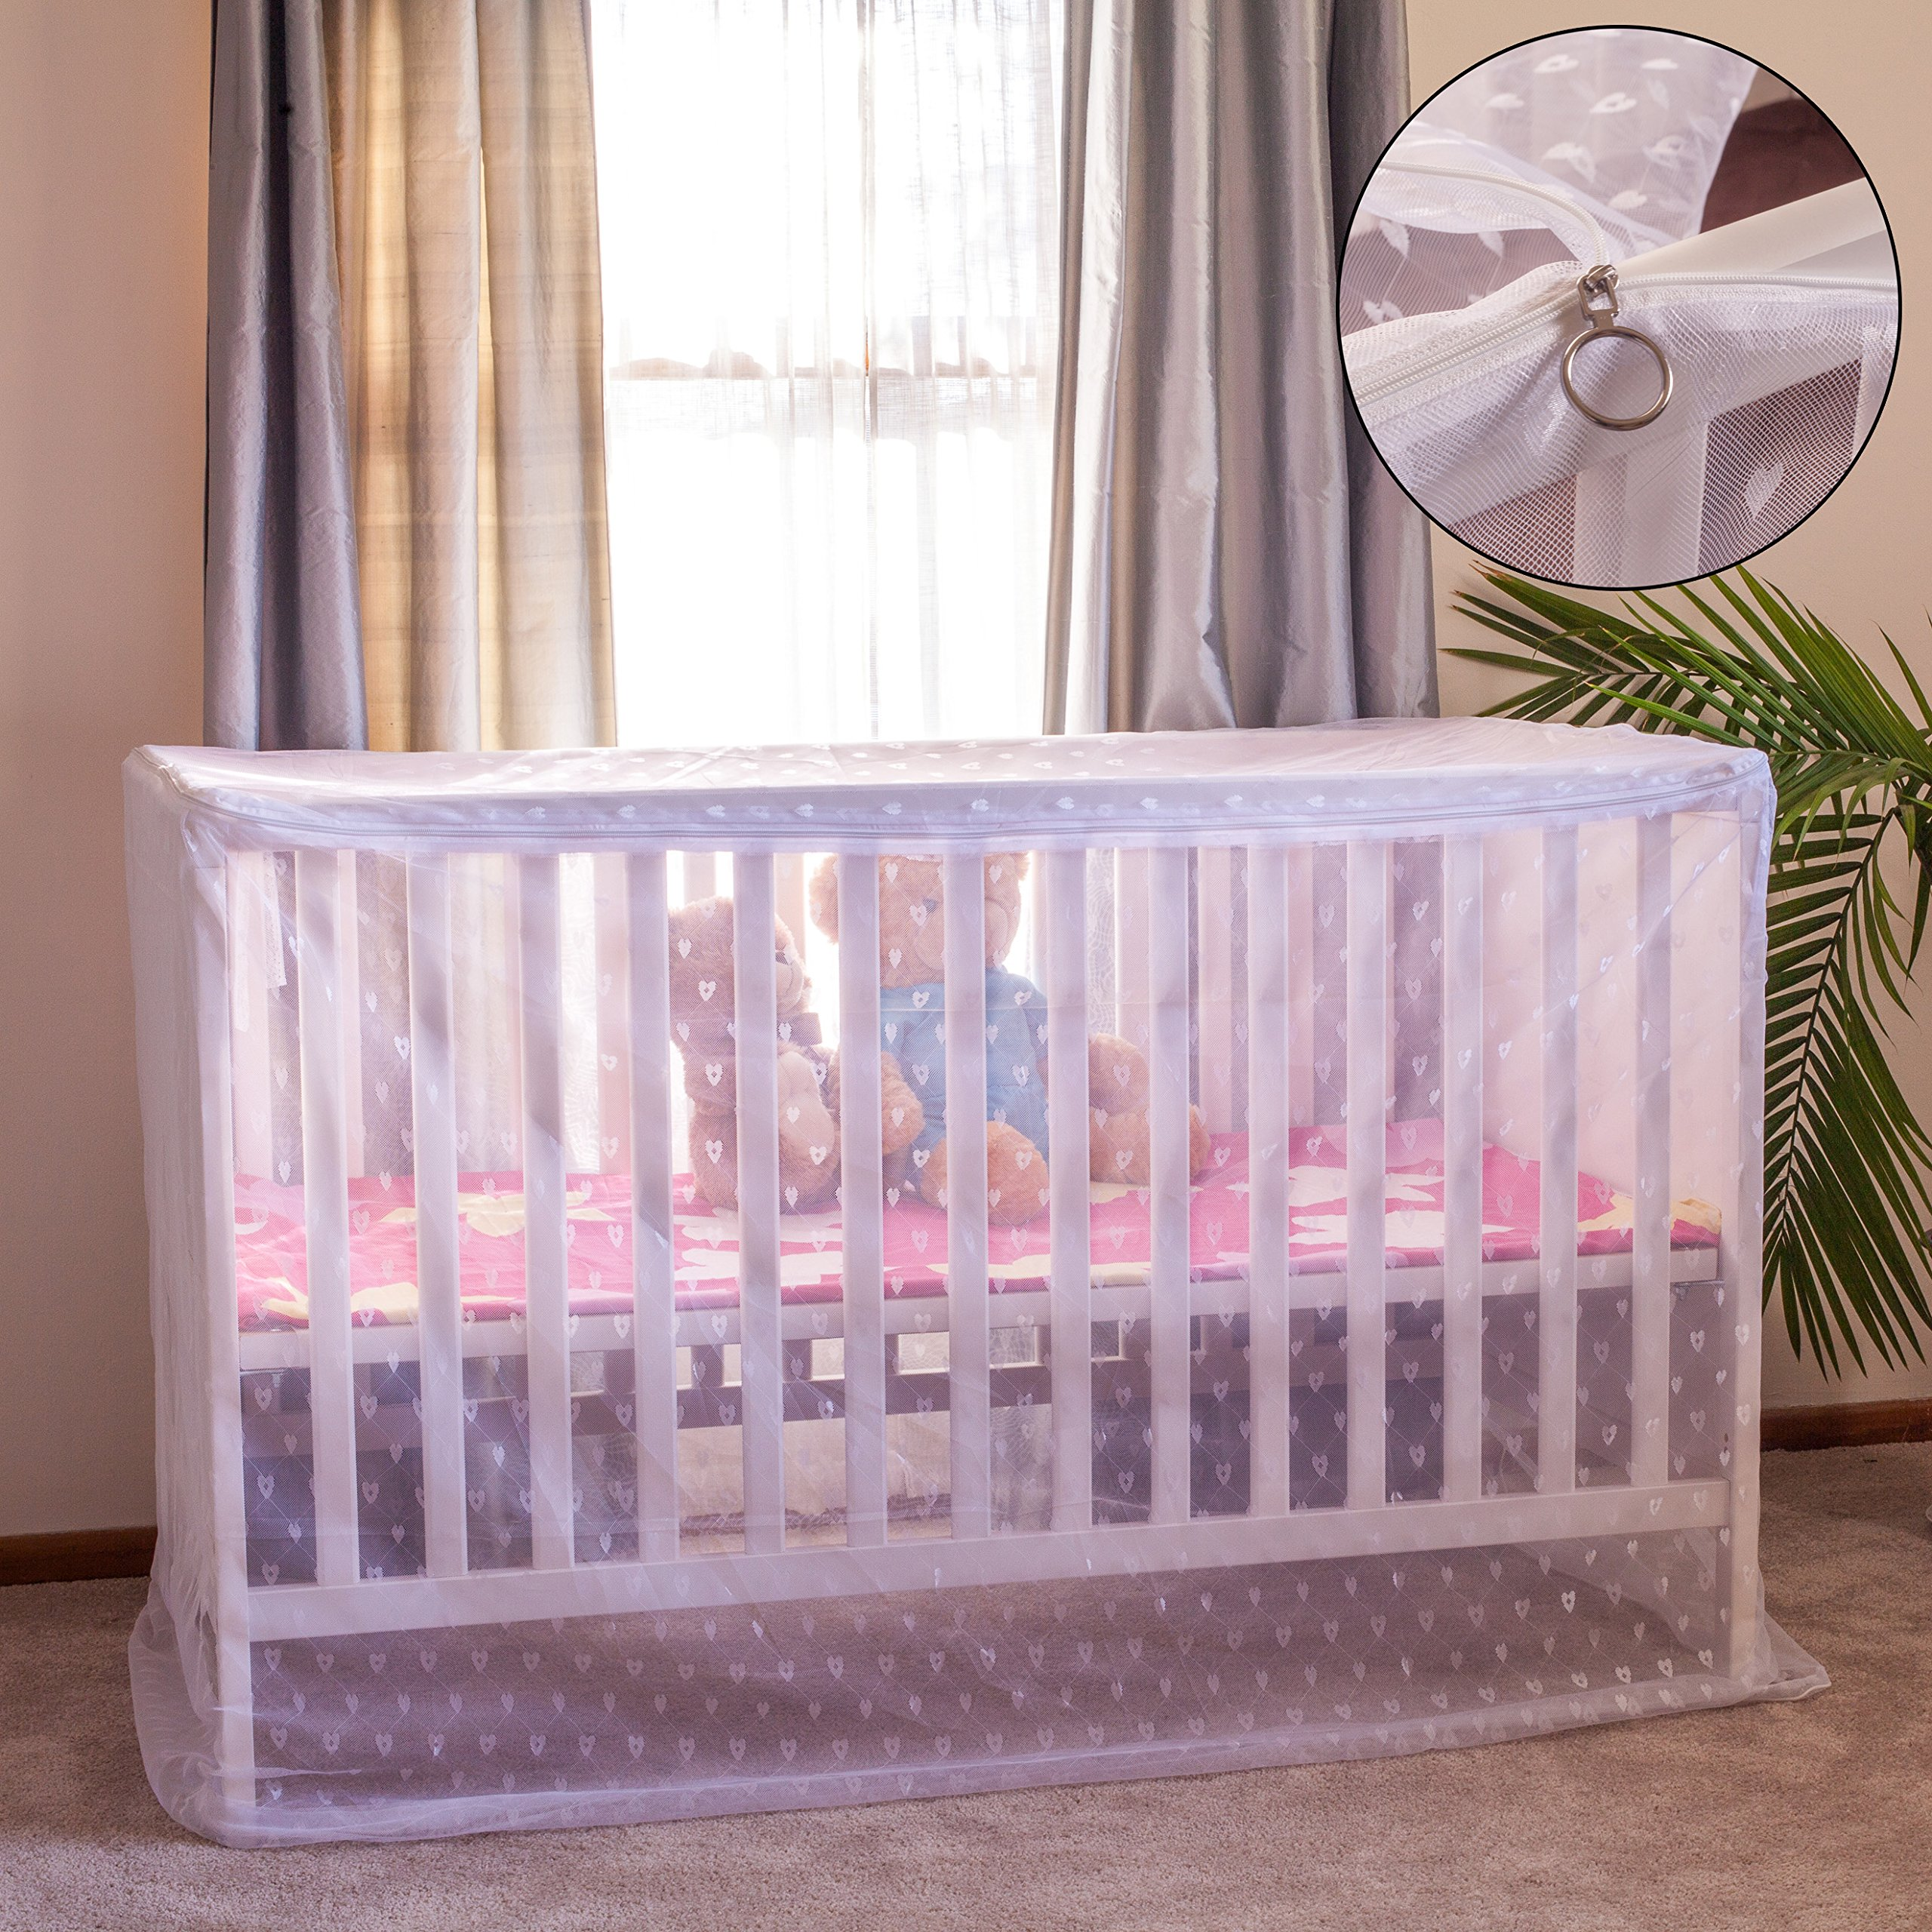 Artistic Baby Mosquito Net for Crib/Playpen/Stroller, with Bonus ebook, Heart-Shaped Diamond mesh, Corner tie Ribbons, top Dual-Direction Zipper, and Bottom Drawstring